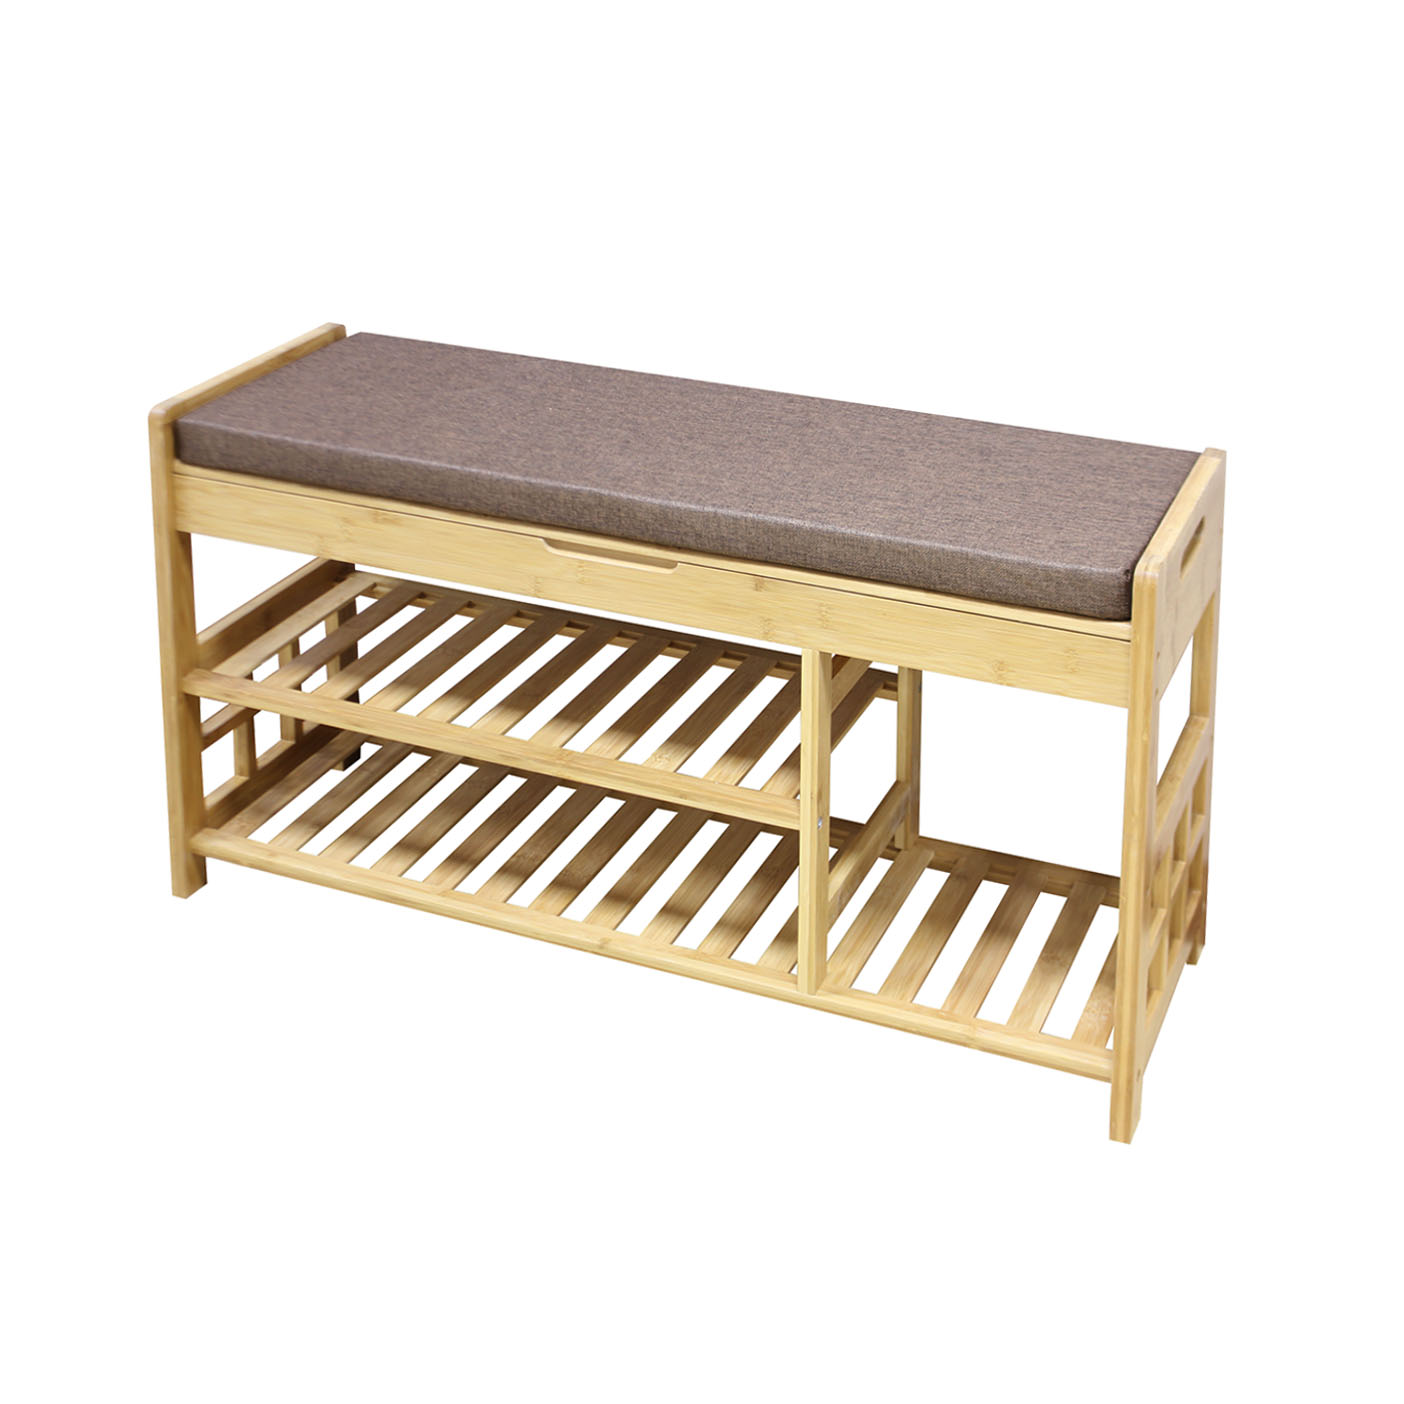 Clevr 2 Tier Shoe Rack Natural Bamboo Organizer Storage Bench With